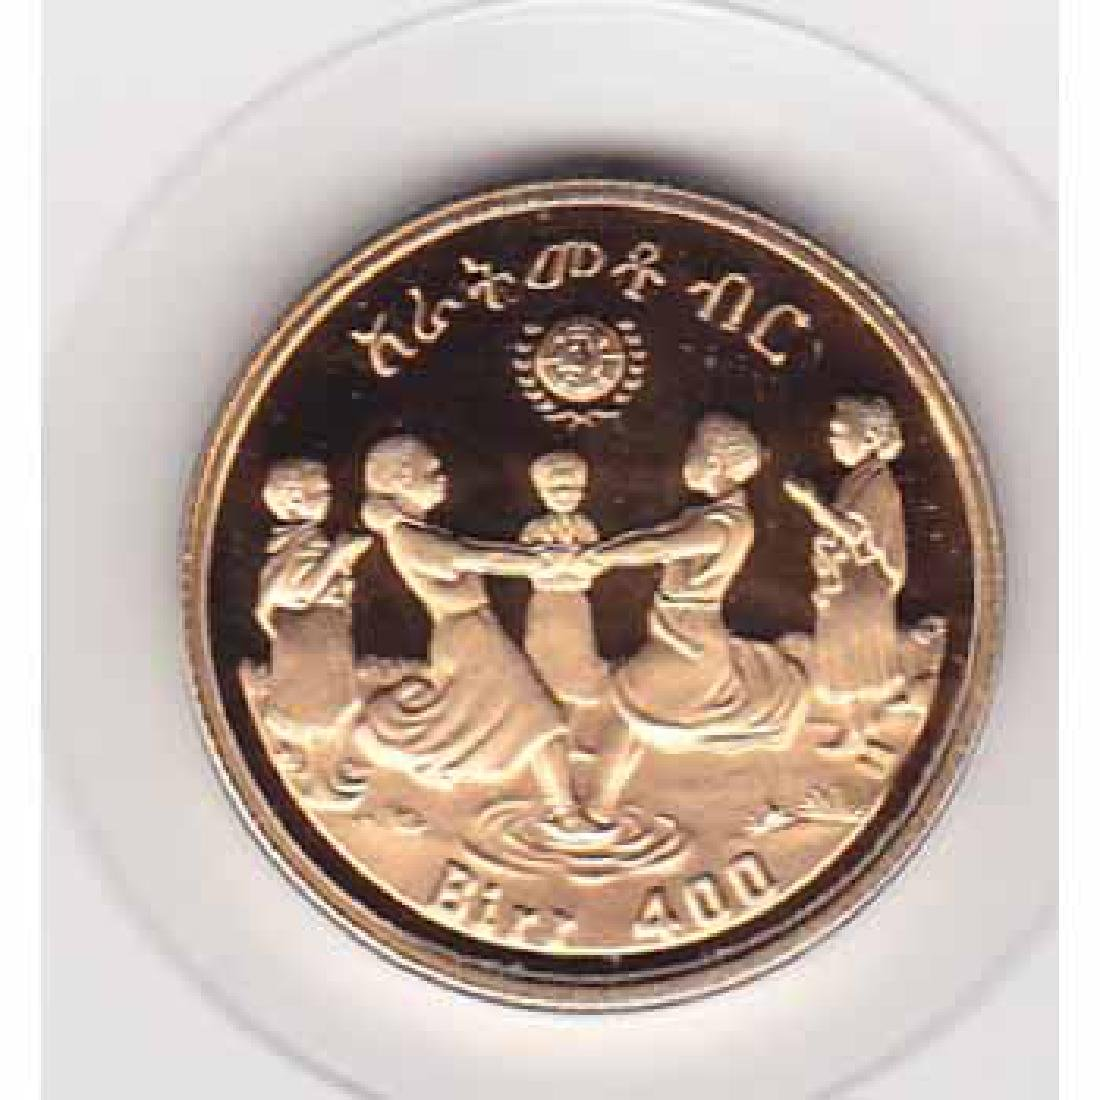 Ethiopia 400 birr gold PF 1979 Year of the Child